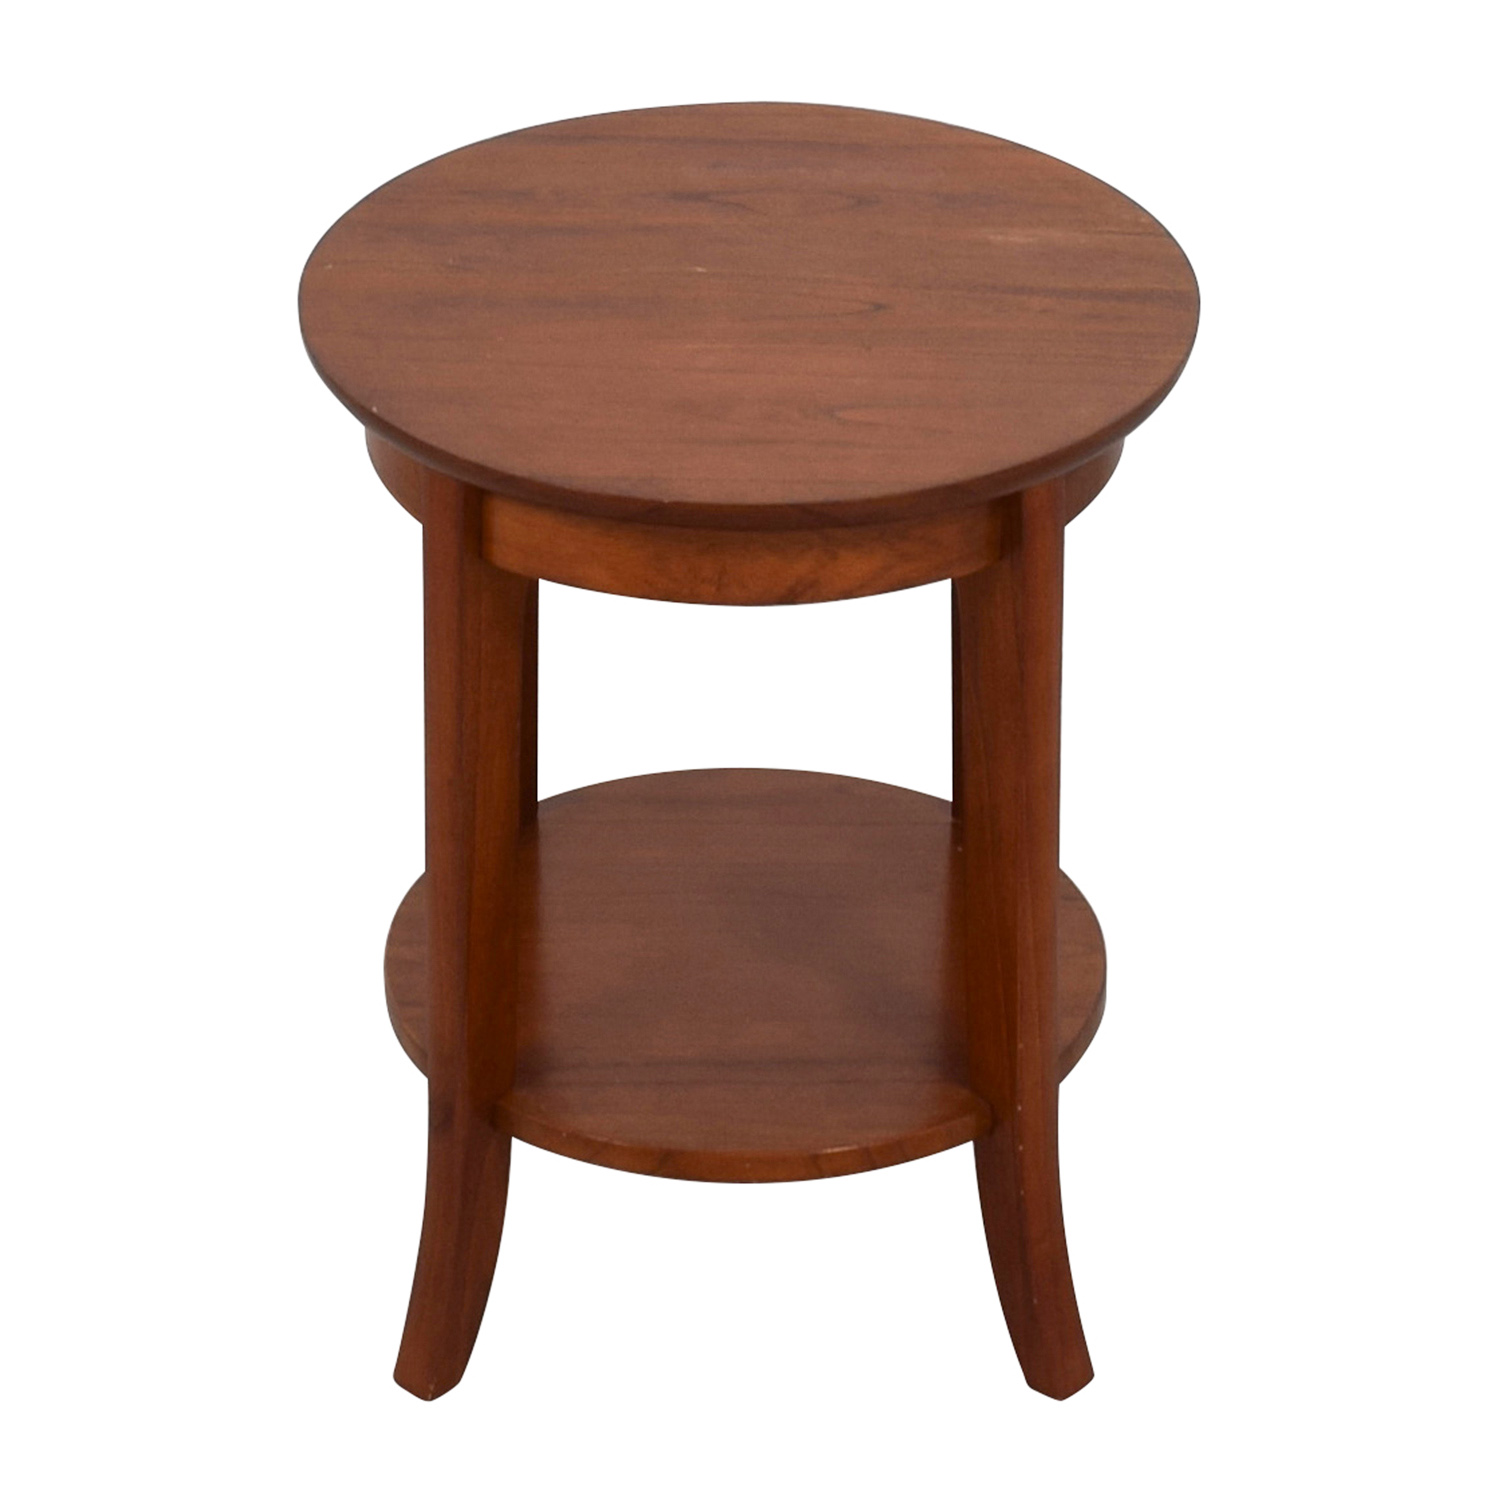 Pottery Barn Pottery Barn Chloe Side Table brown